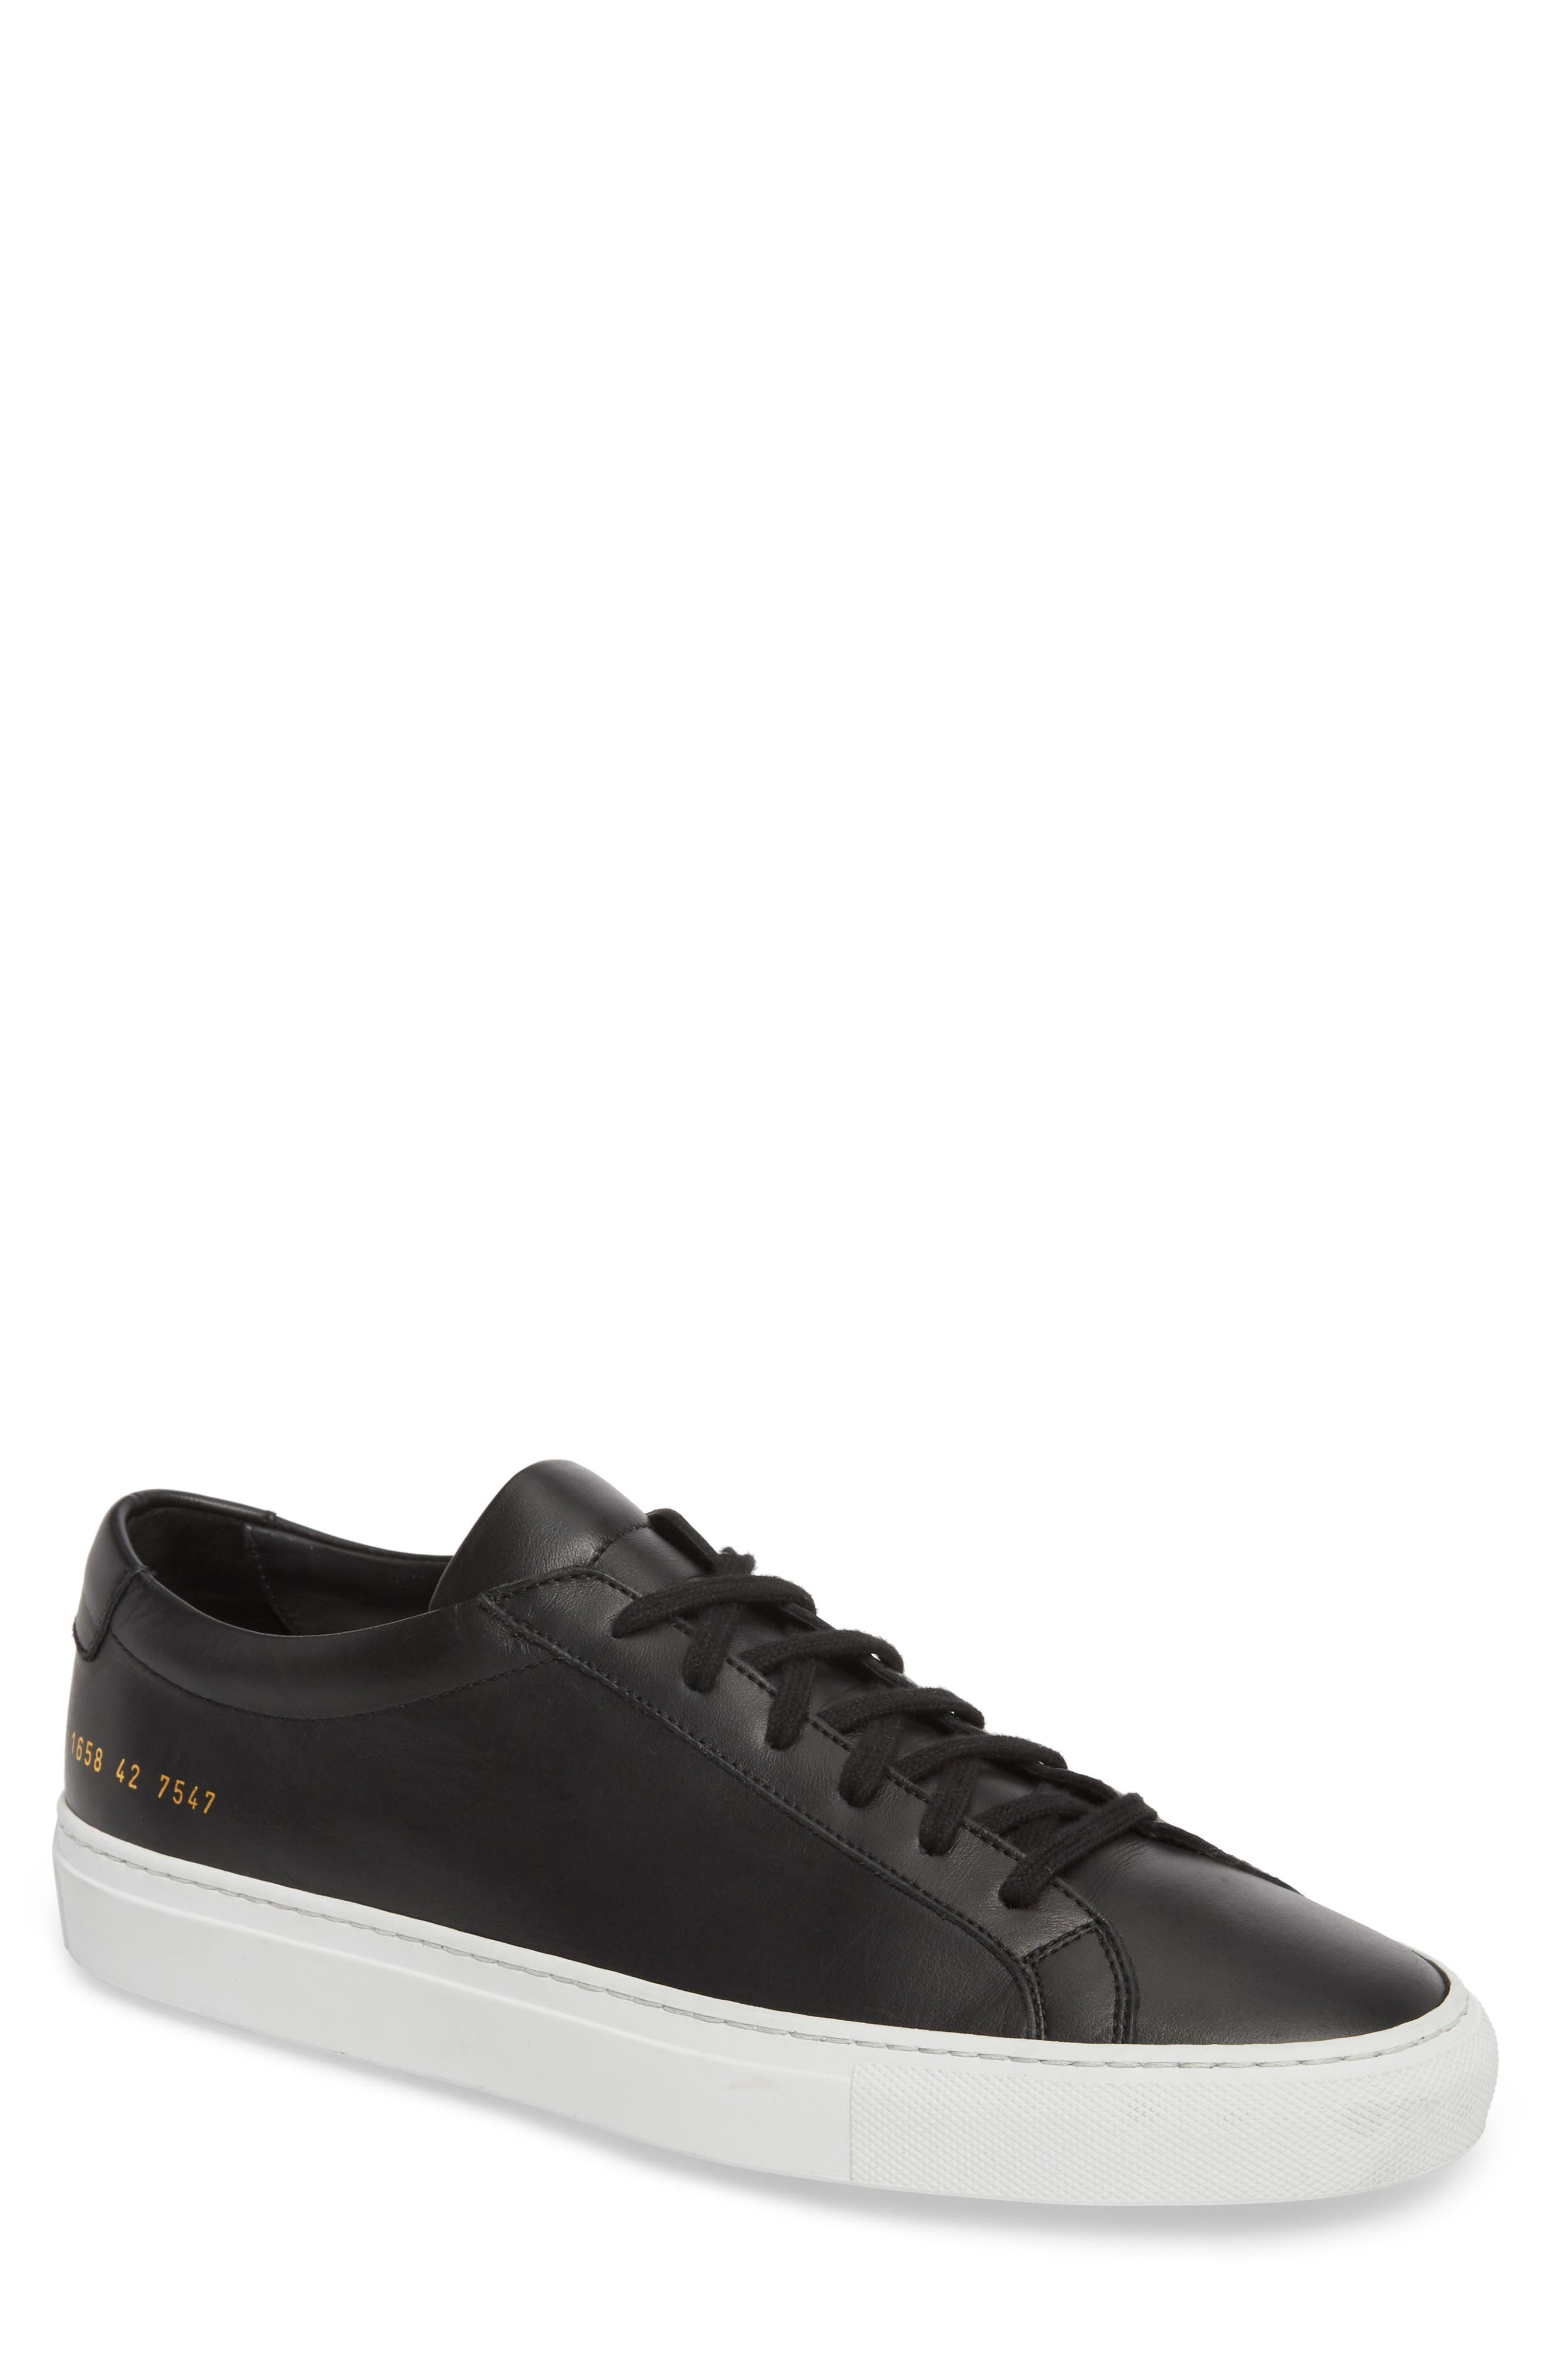 COMMON PROJECTS Achilles Low Sneaker, Main, color, BLACK LEATHER